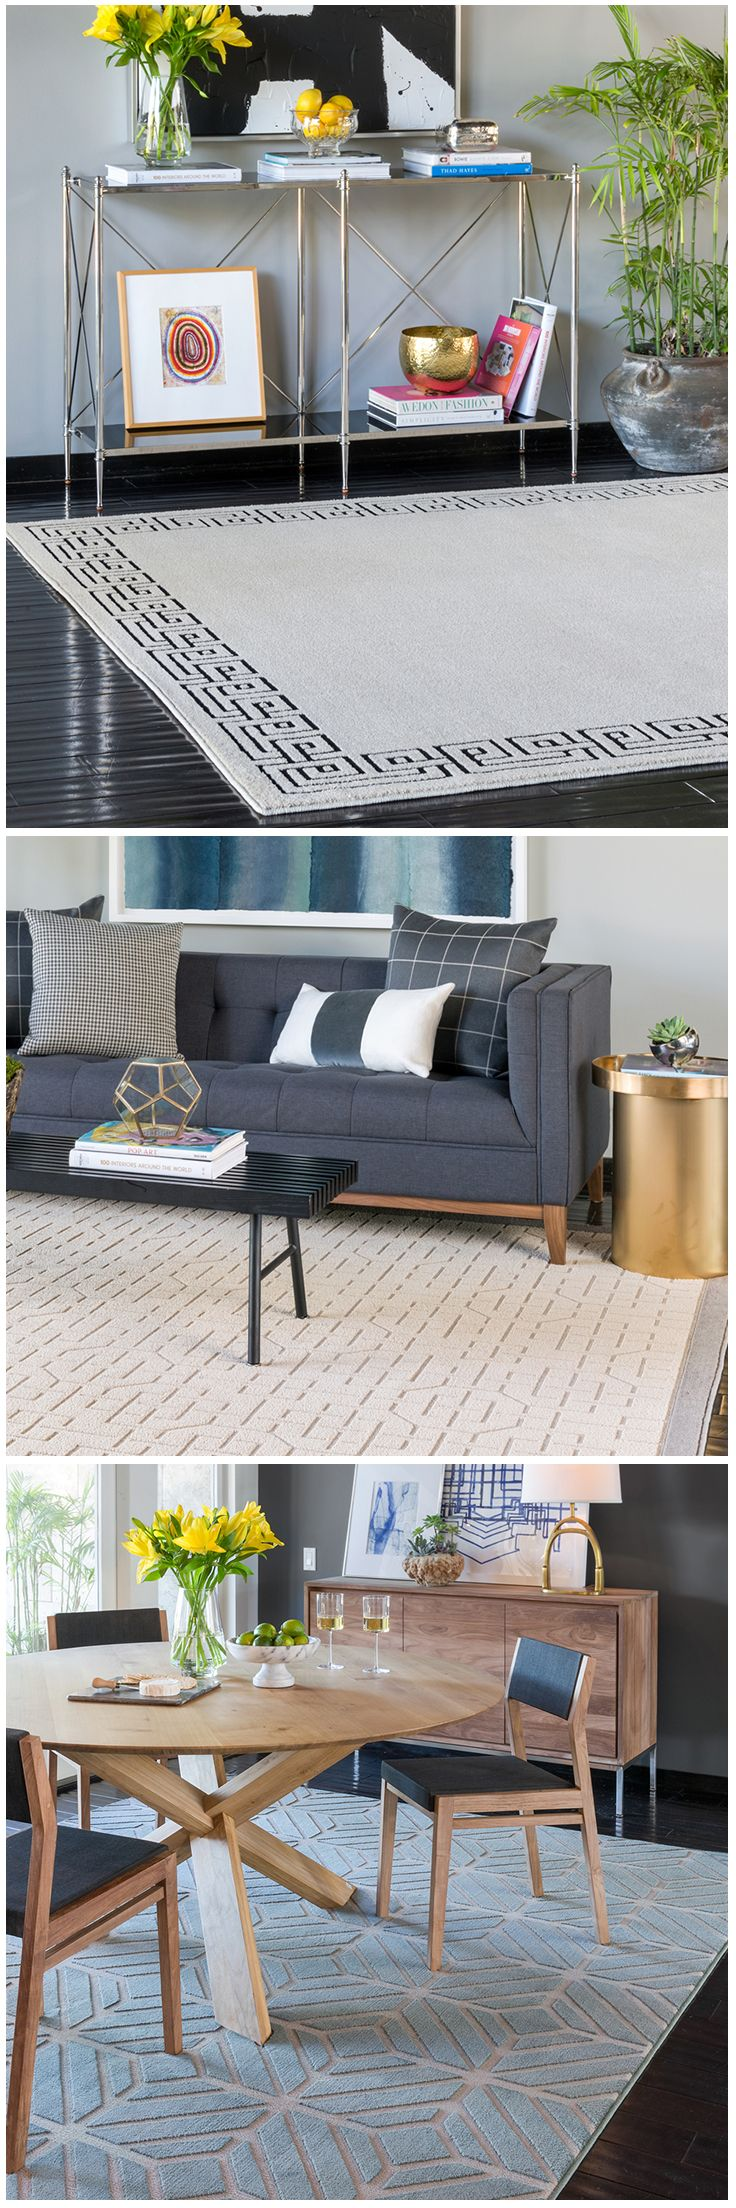 17 Best images about Flooring, Carpet & Rugs on Pinterest | Vinyls ...